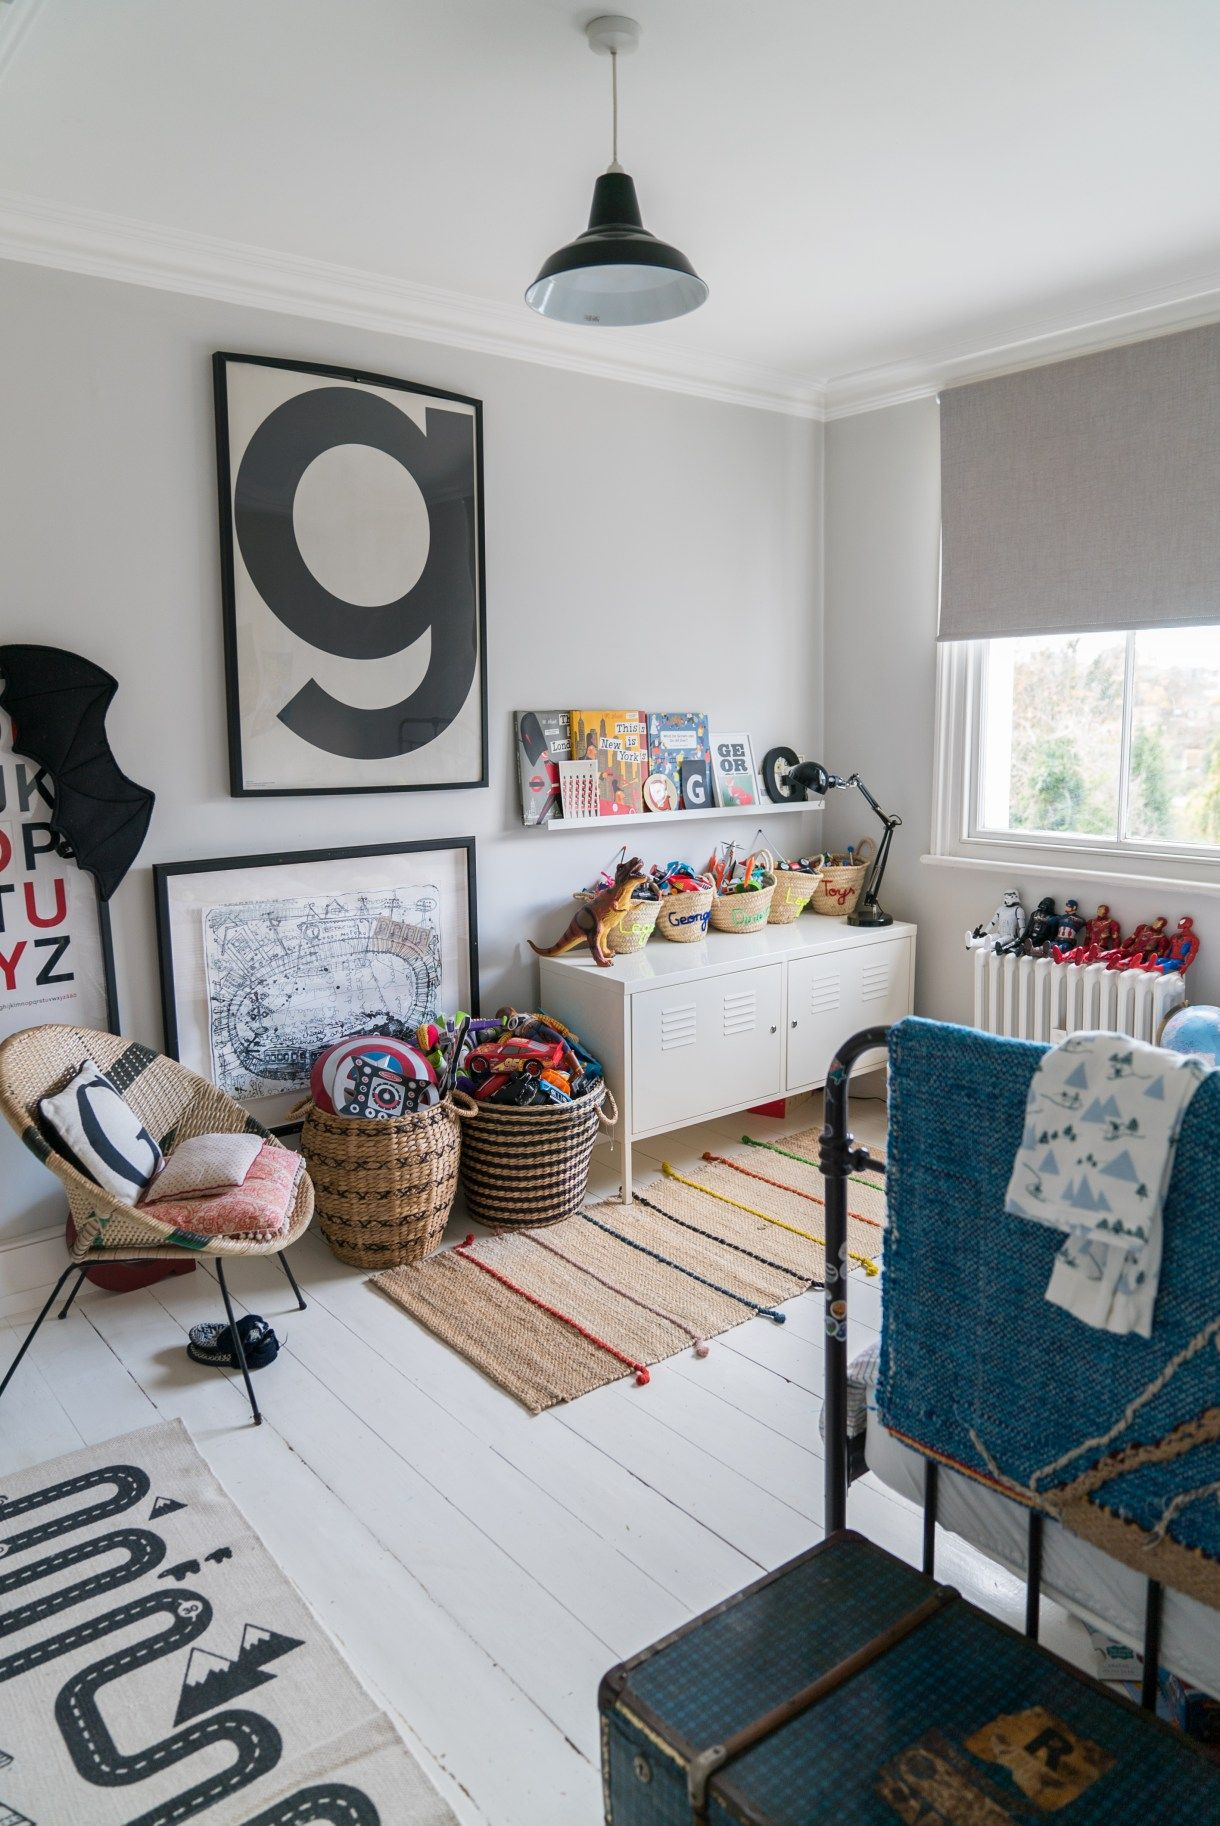 Pin By Kate Dyson On Boys Room | Playroom Design, Kids